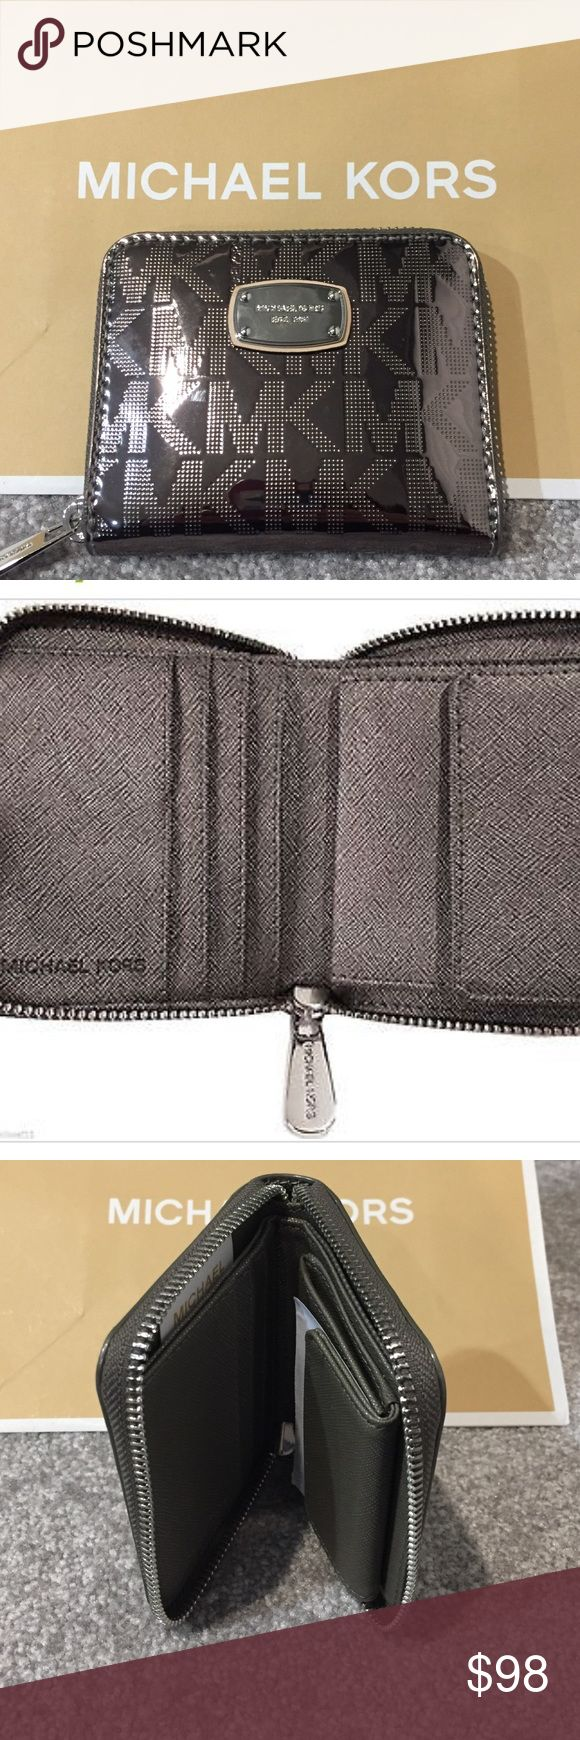 """MICHAEL KORS JET SET BIFOLD WALLET NICKEL NWT MICHAEL KORS JET SET BIFOLD WALLET NICKEL NWT.                                                                                                               Signature Nickel Mirror PVC Exterior Zip Closure Wraps Around Three Sides MK Nickel Silver Metal Logo Plate Polished Silver color Hardware Matching Textured Leather Interior  Lined in MK Custom Gray Sateen Four Card Slots  Currency Pocket Coin Purse has Snap Closure Dimensions : 4"""" W, 3.5"""" H…"""